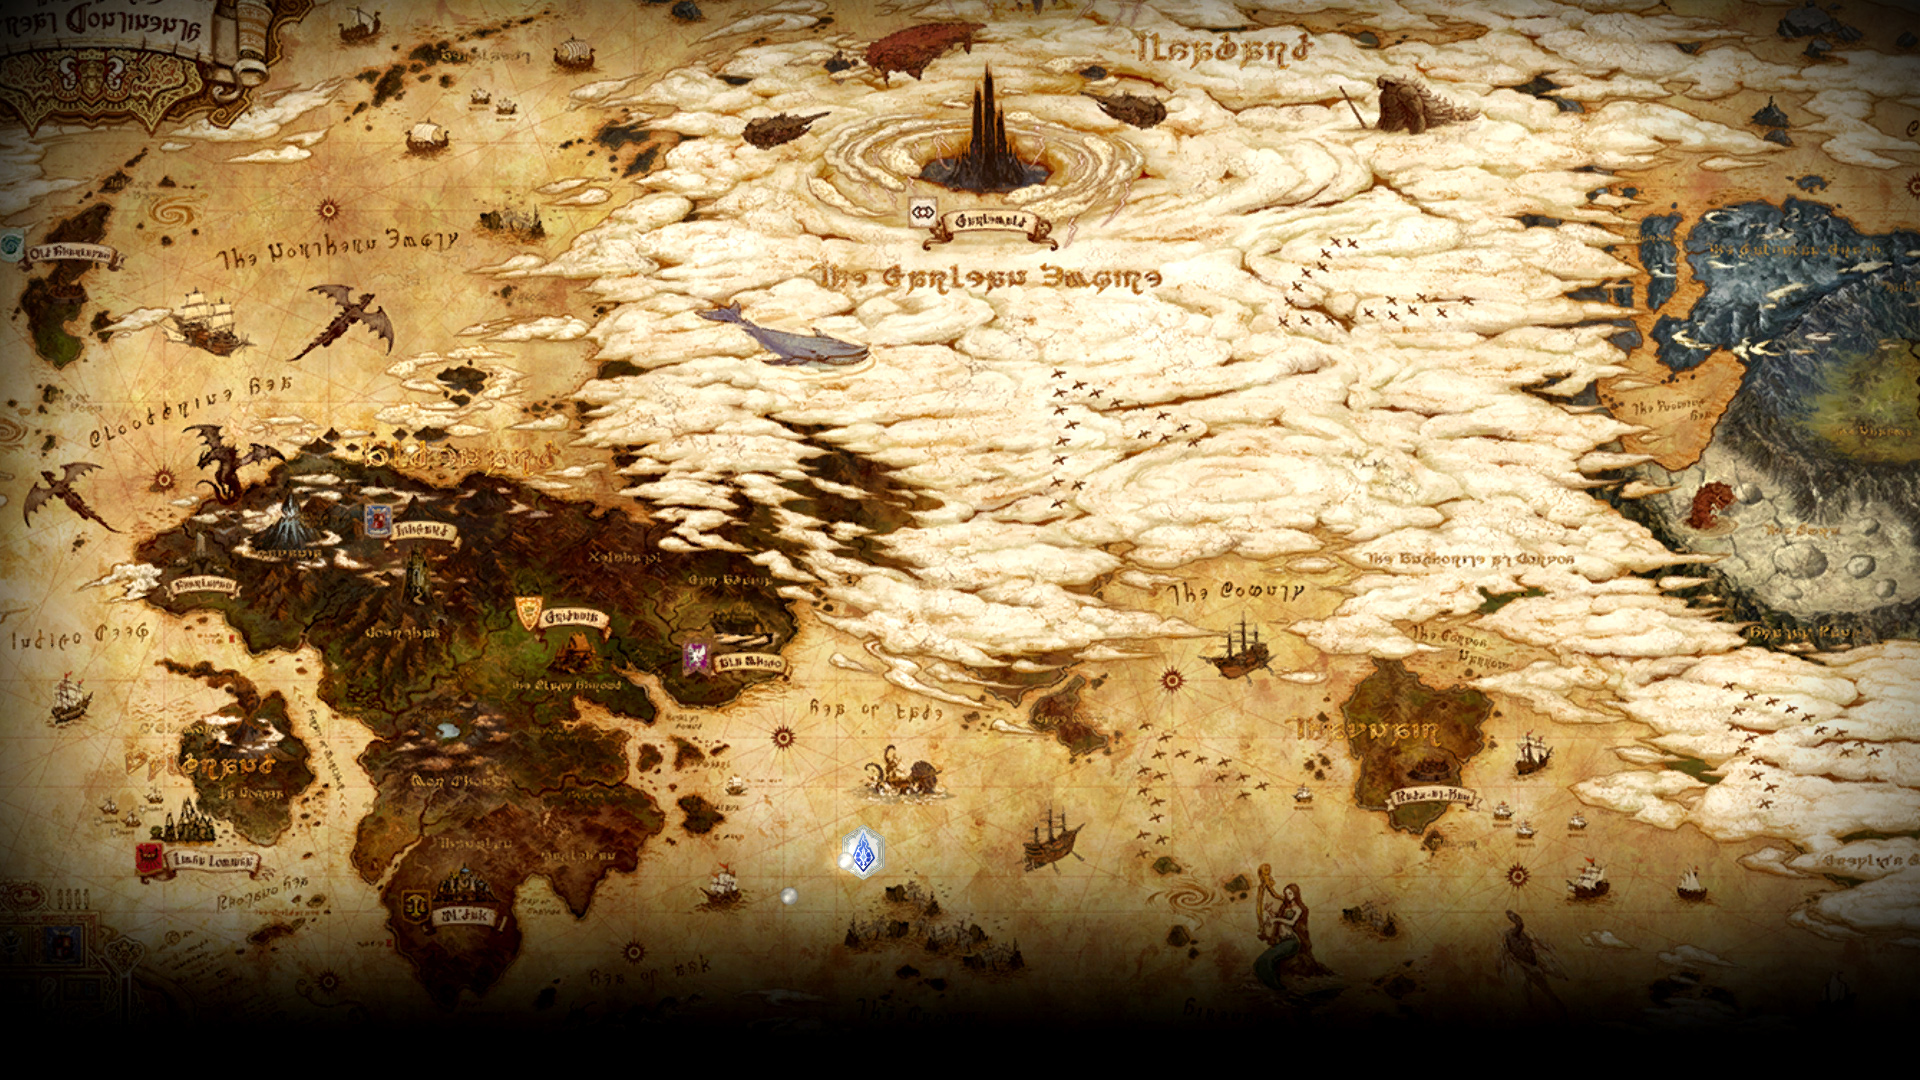 Final Fantasy Xiv Returning To Eorzea 6 Years Later The Ups And Downs Of Mmorpgs Lh Yeung Net Blog Anigames